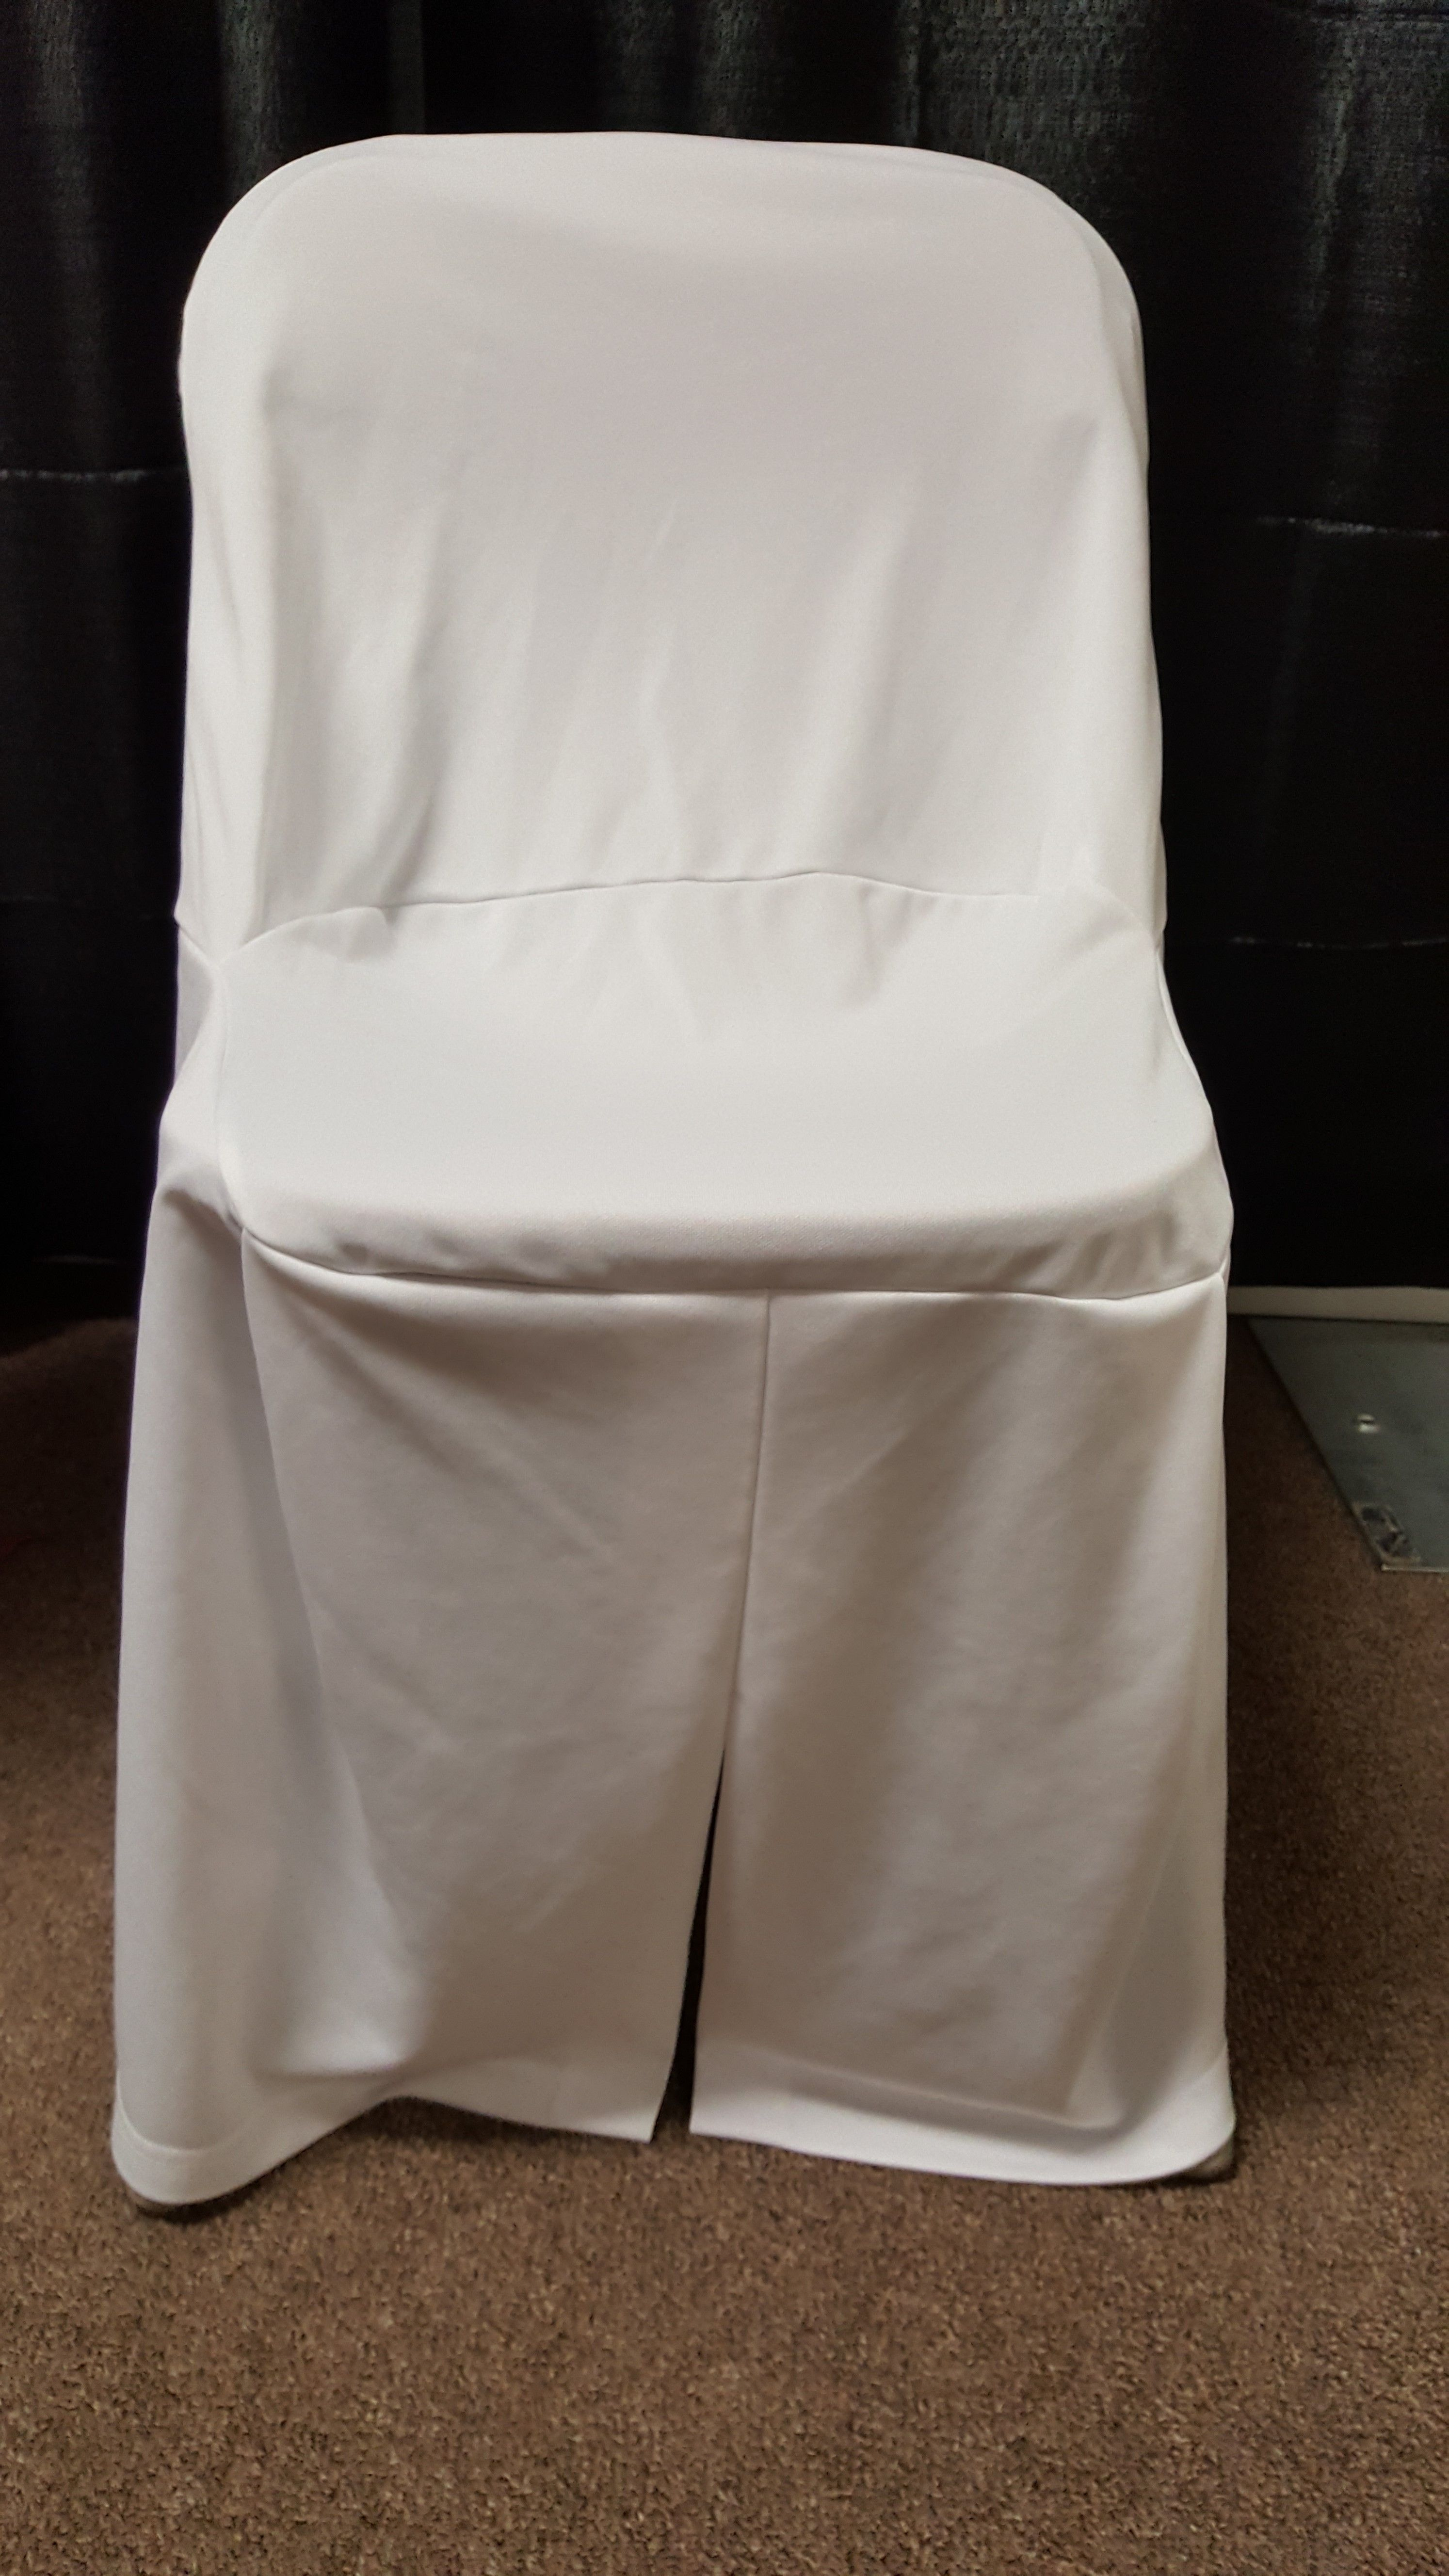 White folding chair cover displayed on burgundy folding chair